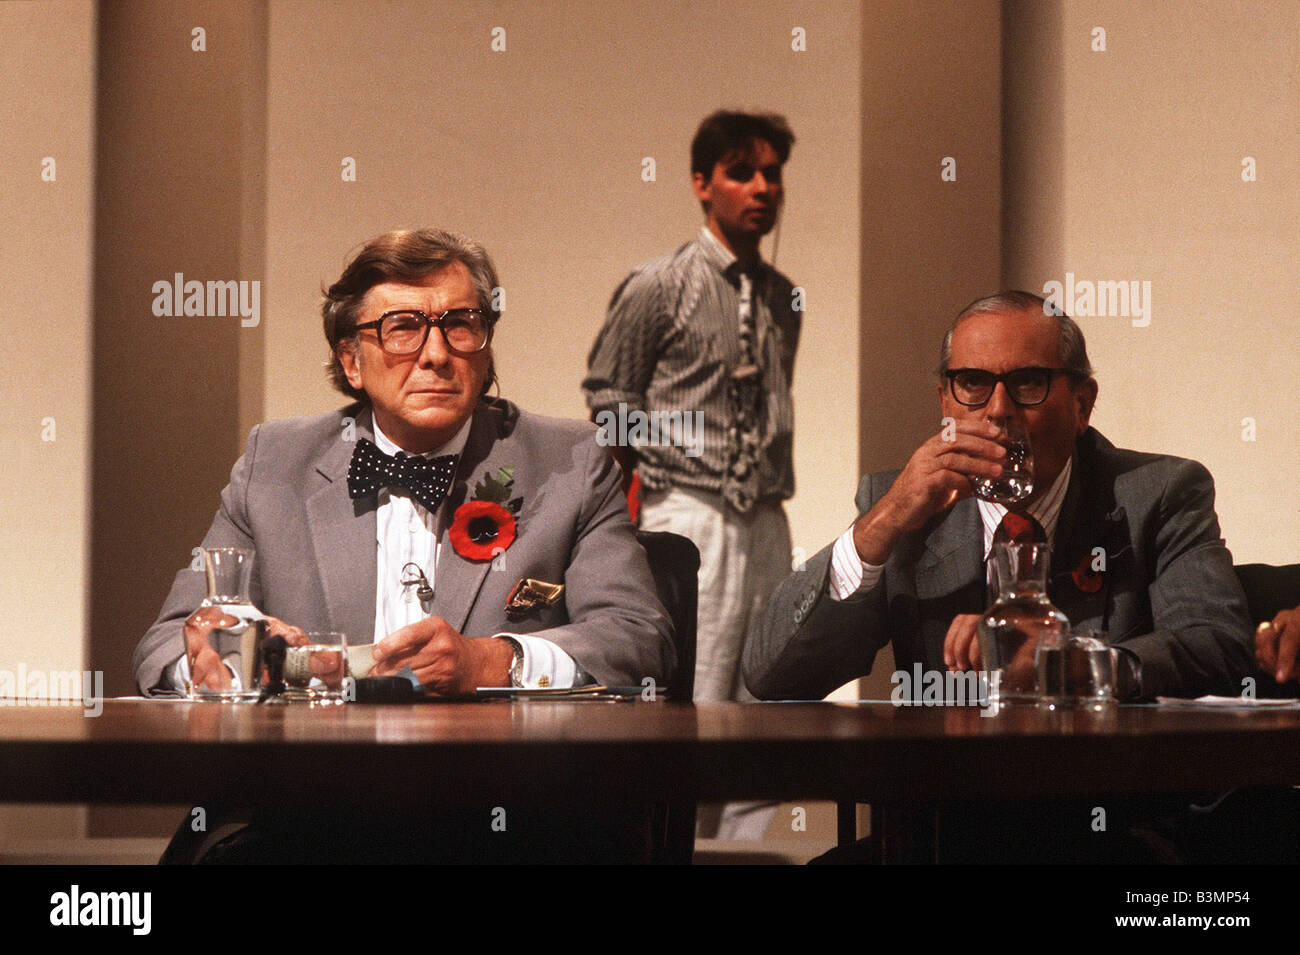 Sir Robin Day TV Presenter of BBC TV Programme Question Time - Stock Image